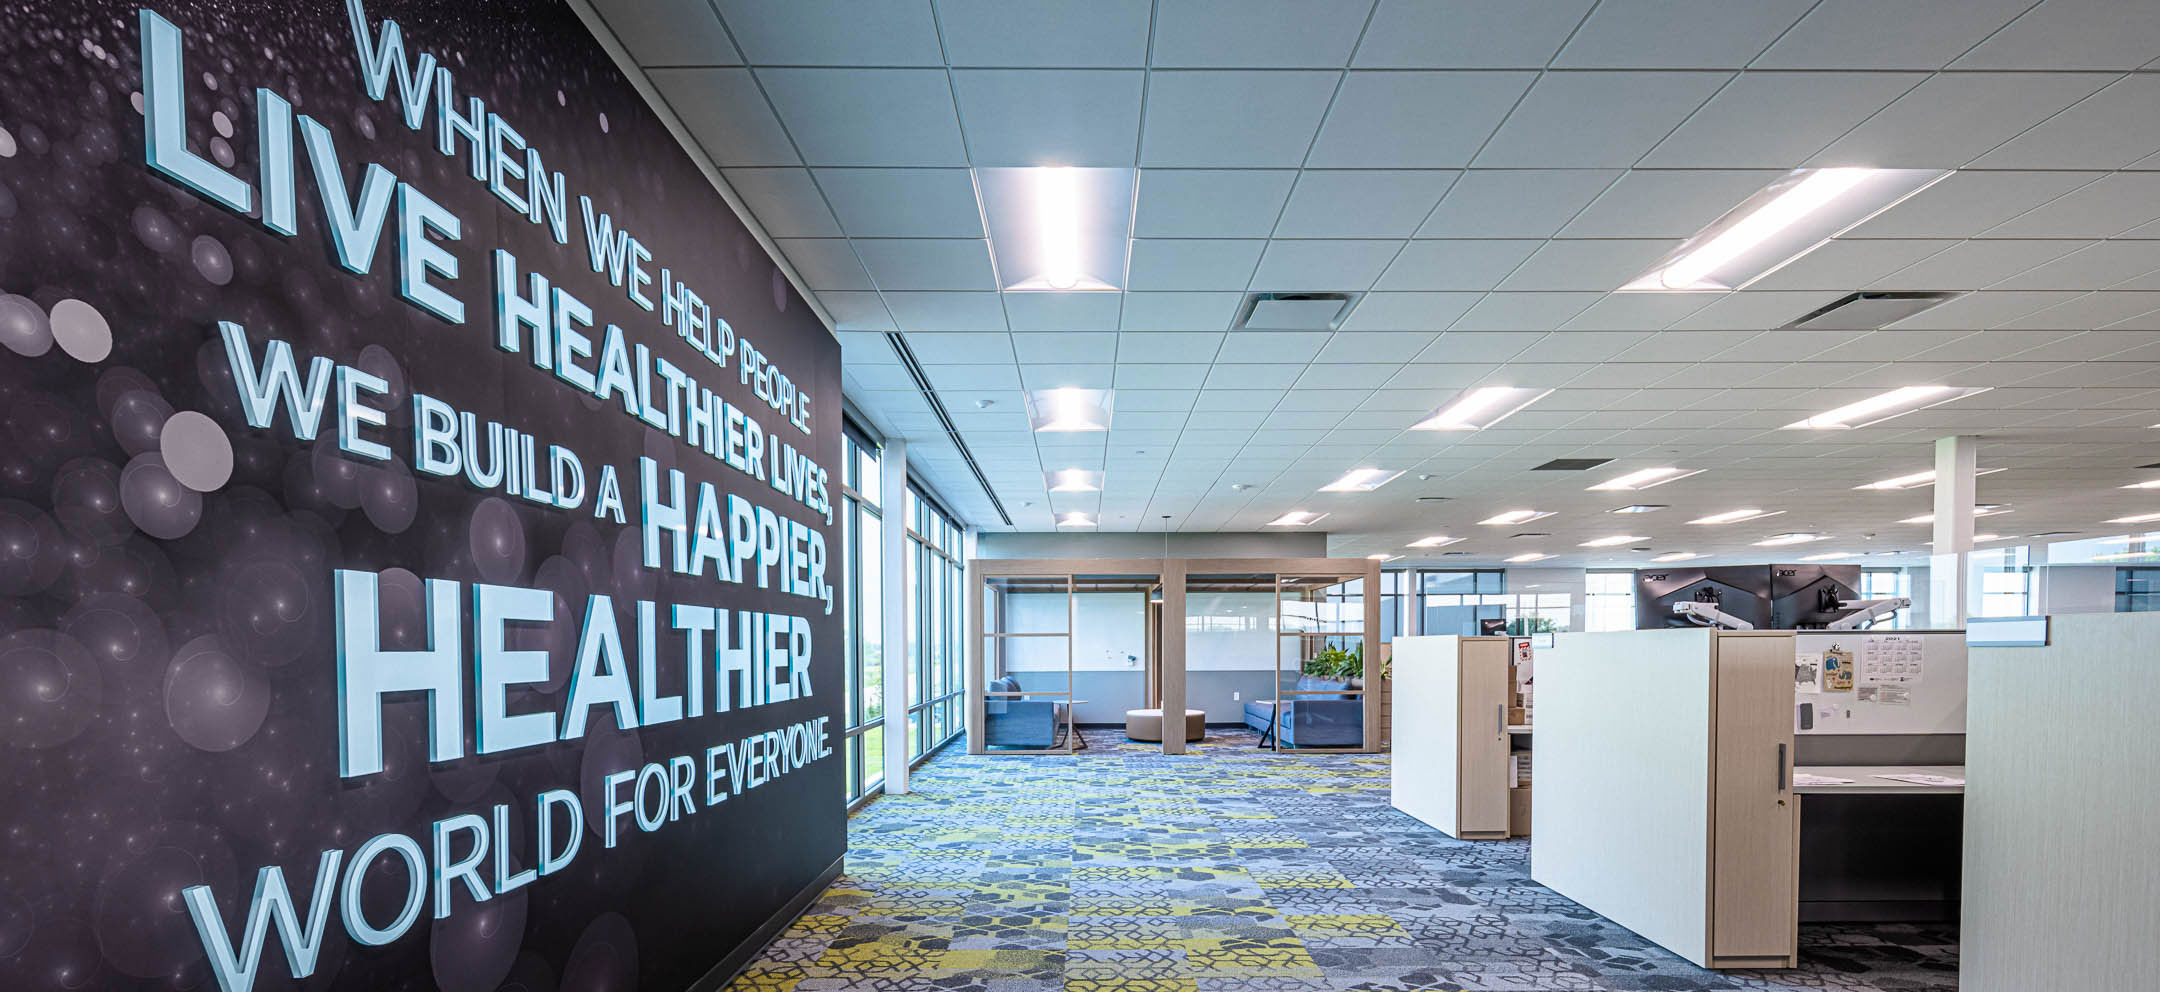 Workspace & culture wall art of Nature's Way new corporate office facility constructed by C.D. Smith Construction firm